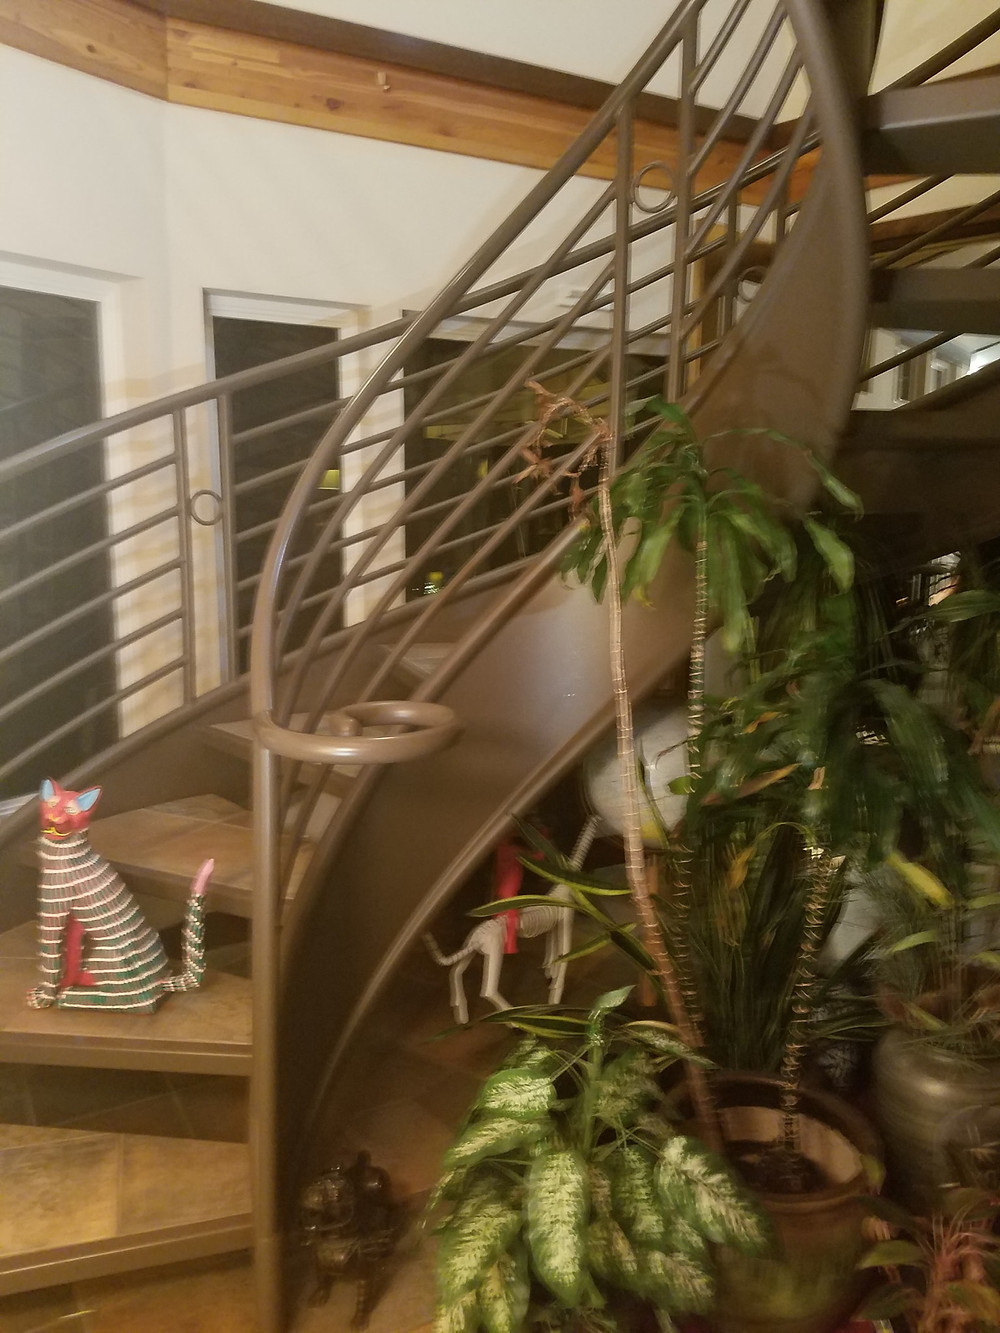 Twisted stairwell guarded by ornamental cat